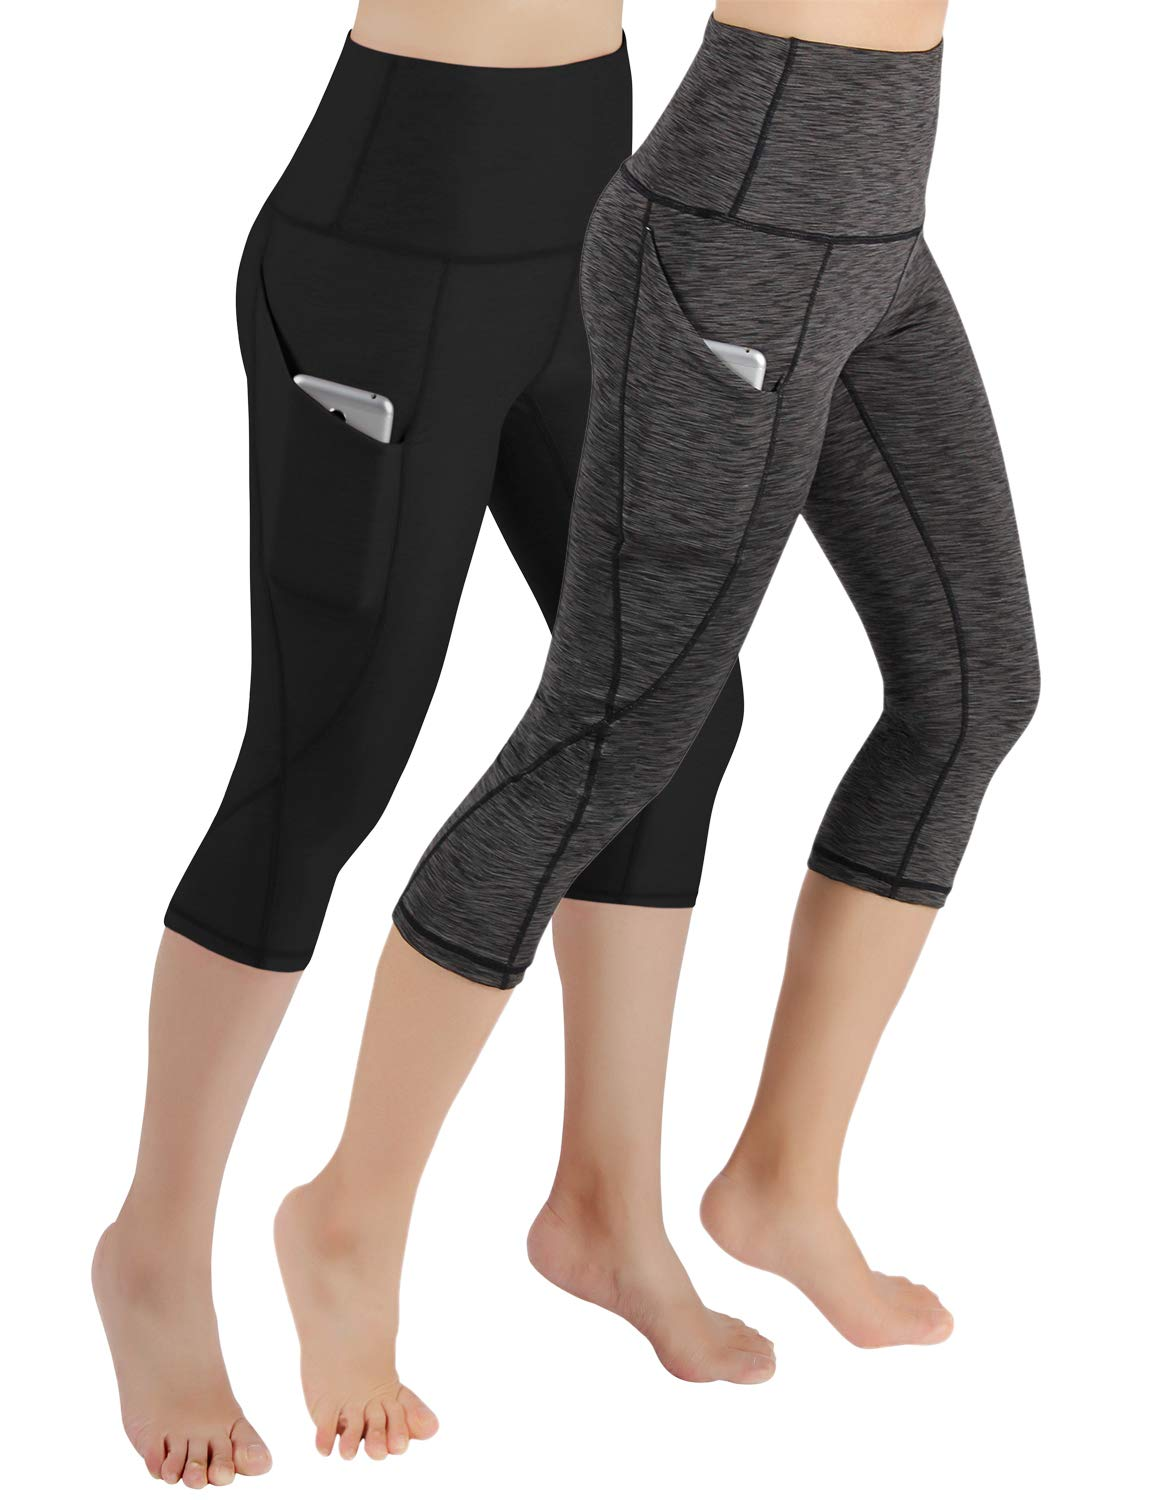 ODODOS Women's High Waist Yoga Capris with Pockets,Tummy Control,Workout Capris Running 4 Way Stretch Yoga Leggings with Pockets,BlackSpaceDyeCharcoal2Pack,XX-Large by ODODOS